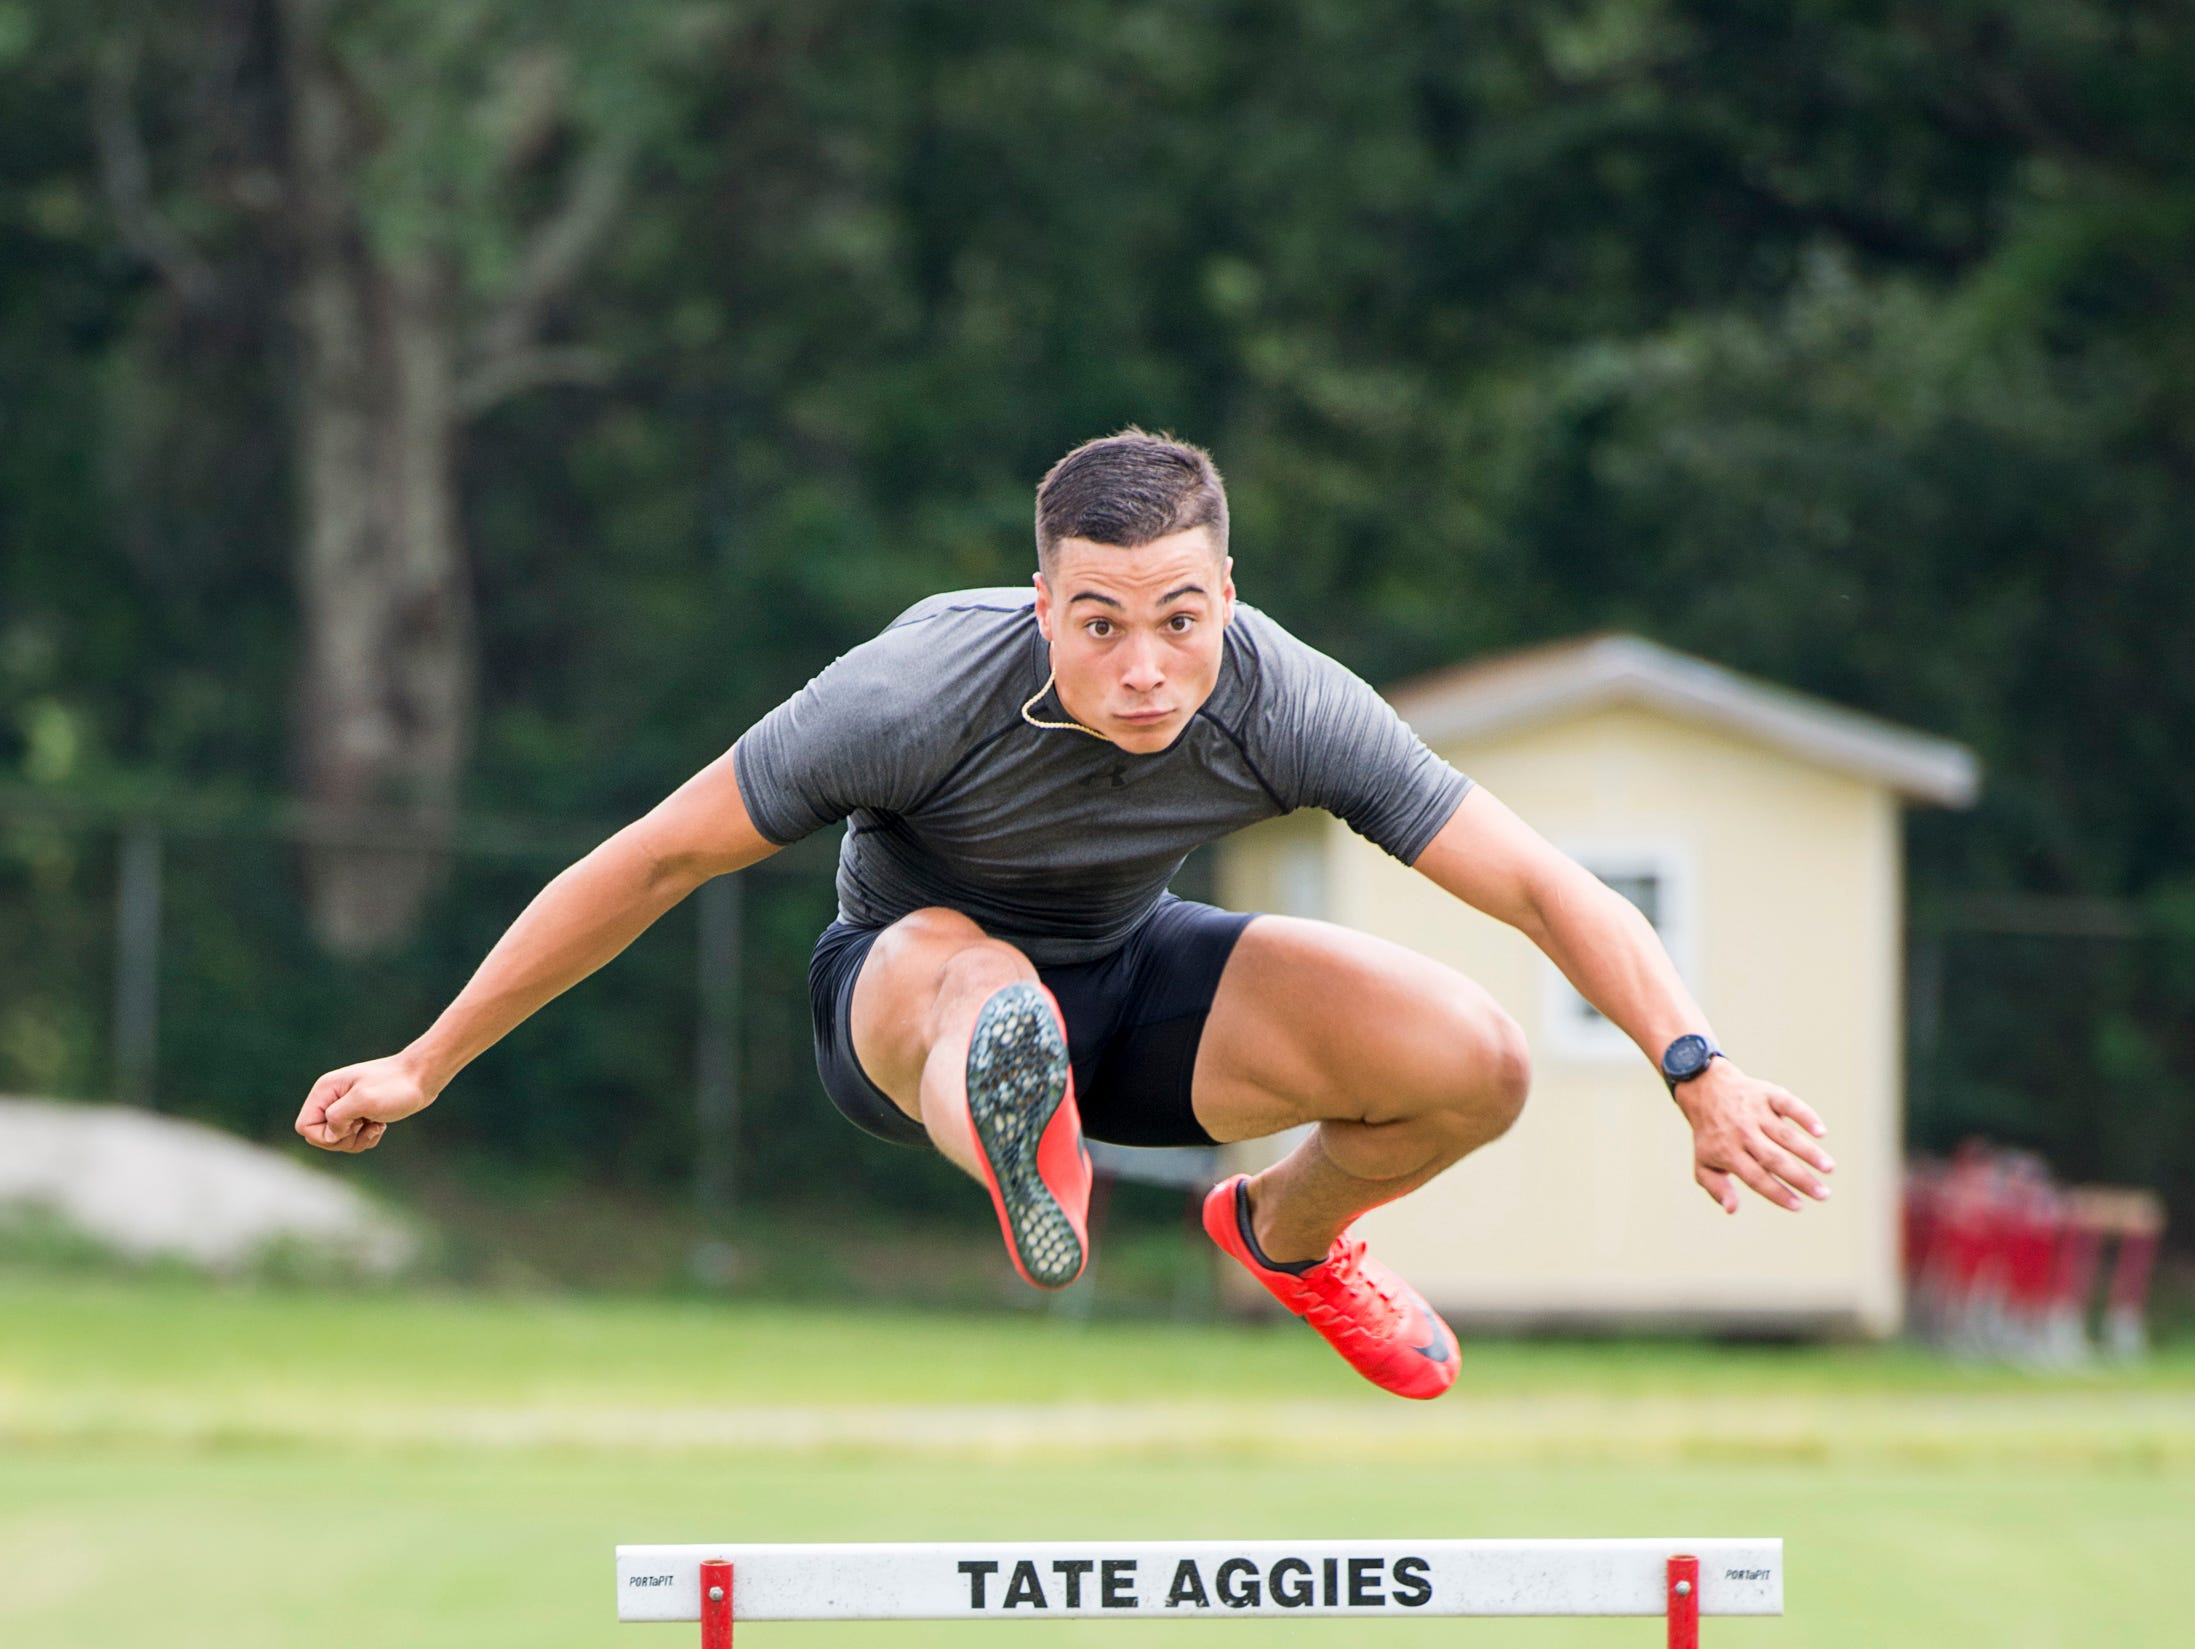 Decathlete Joseph Zayszly shows his hurdling technique at Tate High School in Pensacola on Tuesday, July 24, 2018.